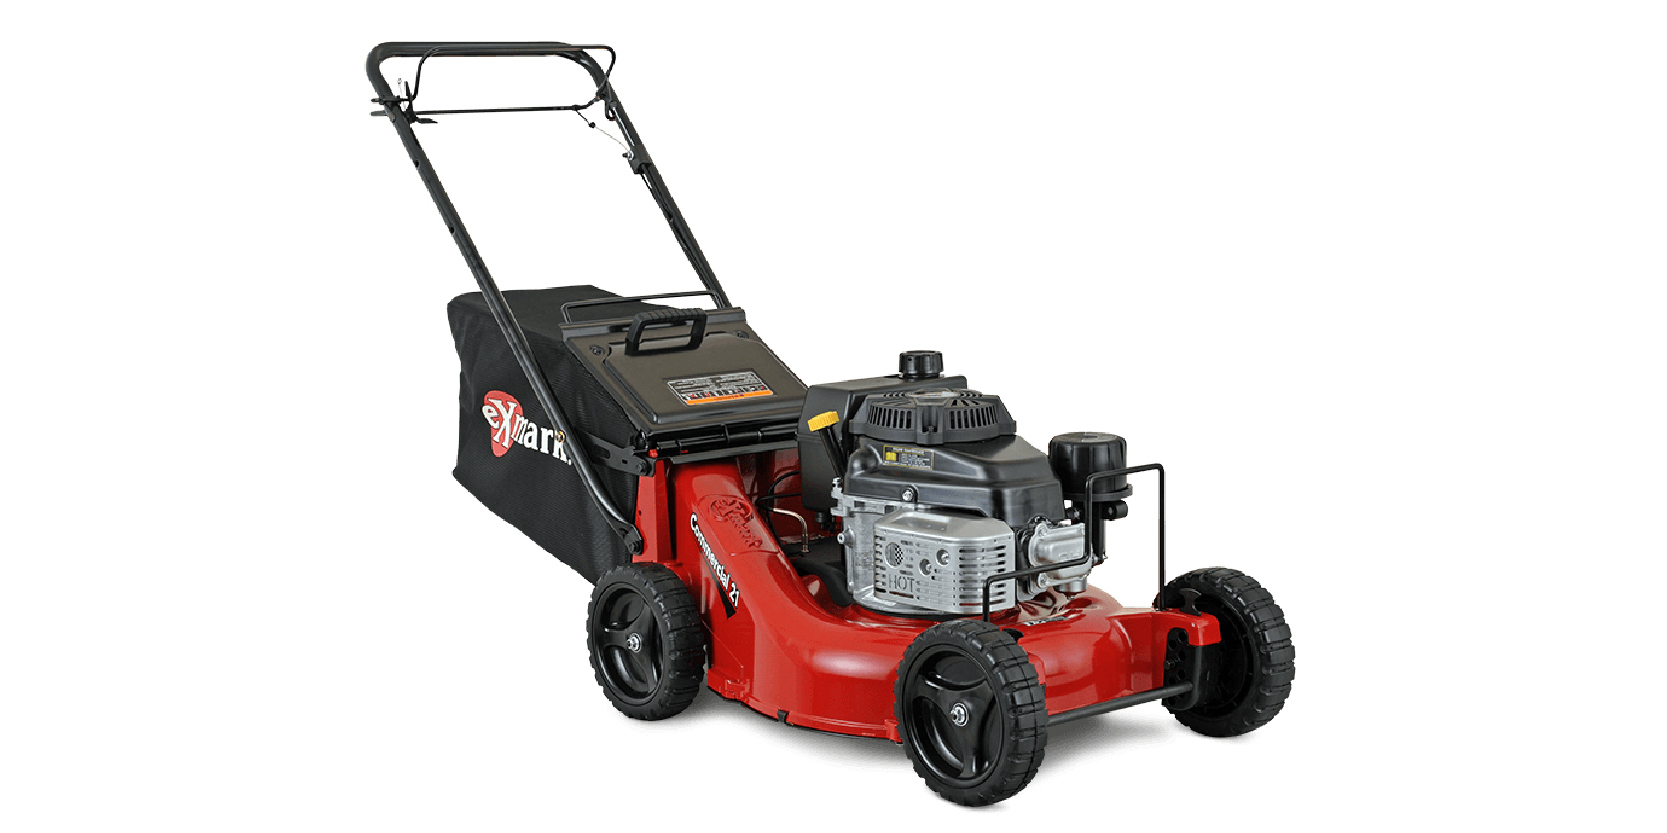 hight resolution of exmark 21 commercial x series lawn mower exmark push mower parts diagram